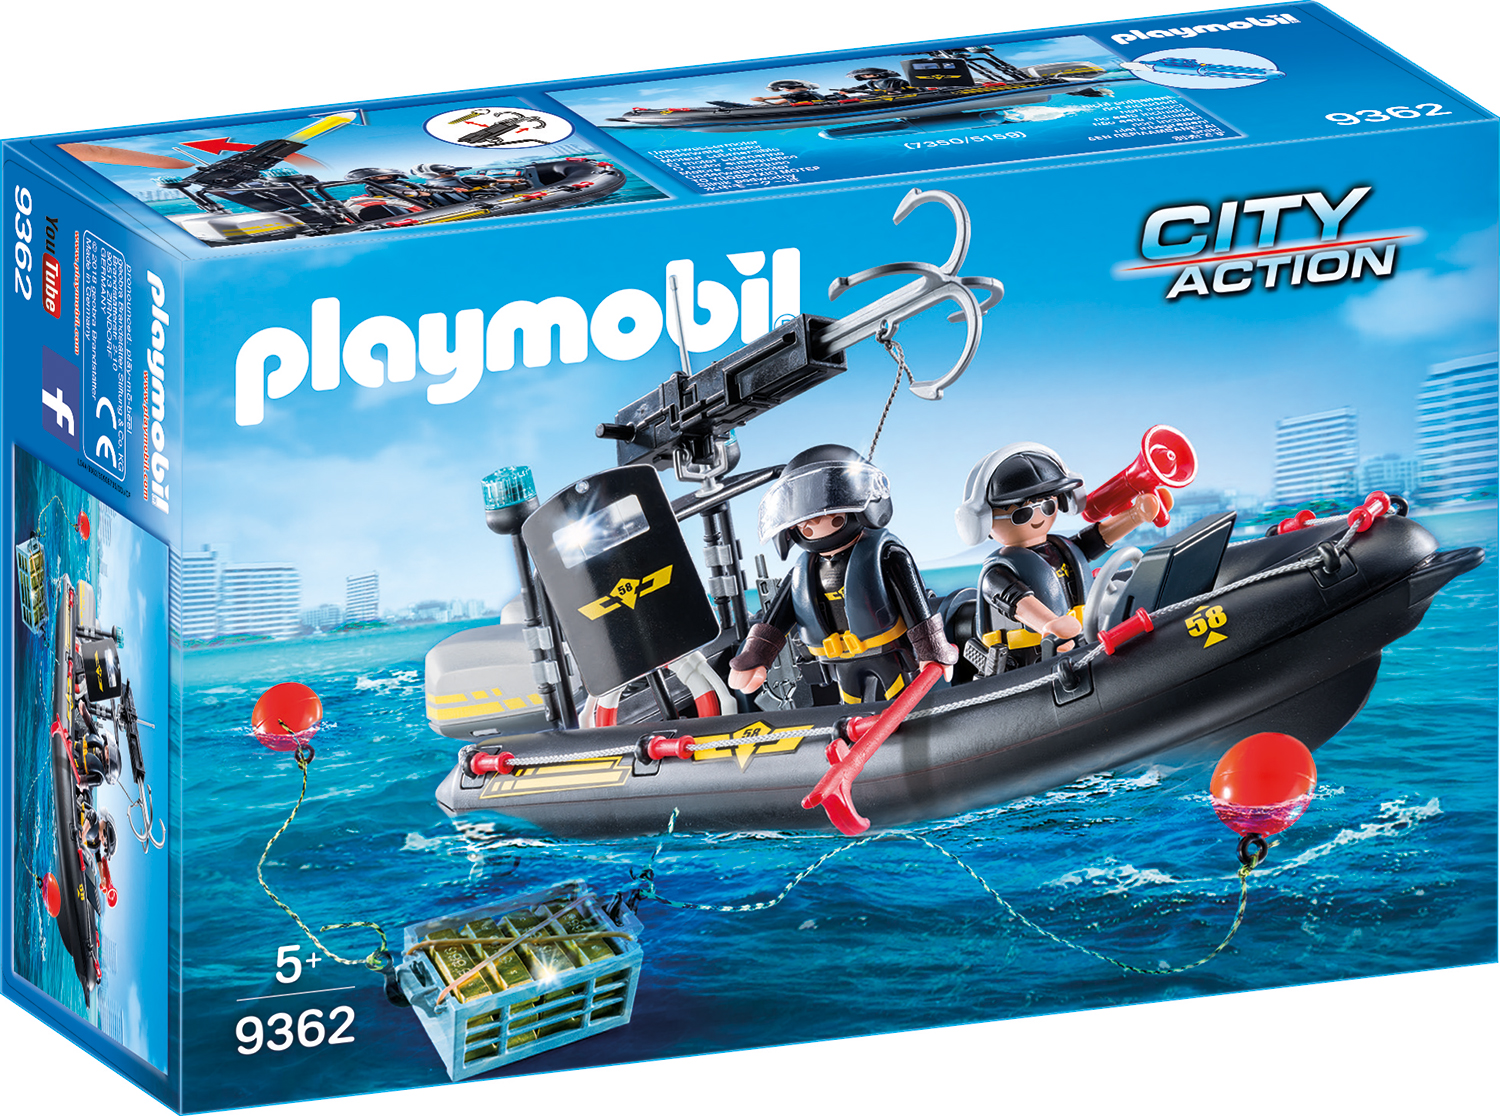 Barca echipei swat playmobil city action